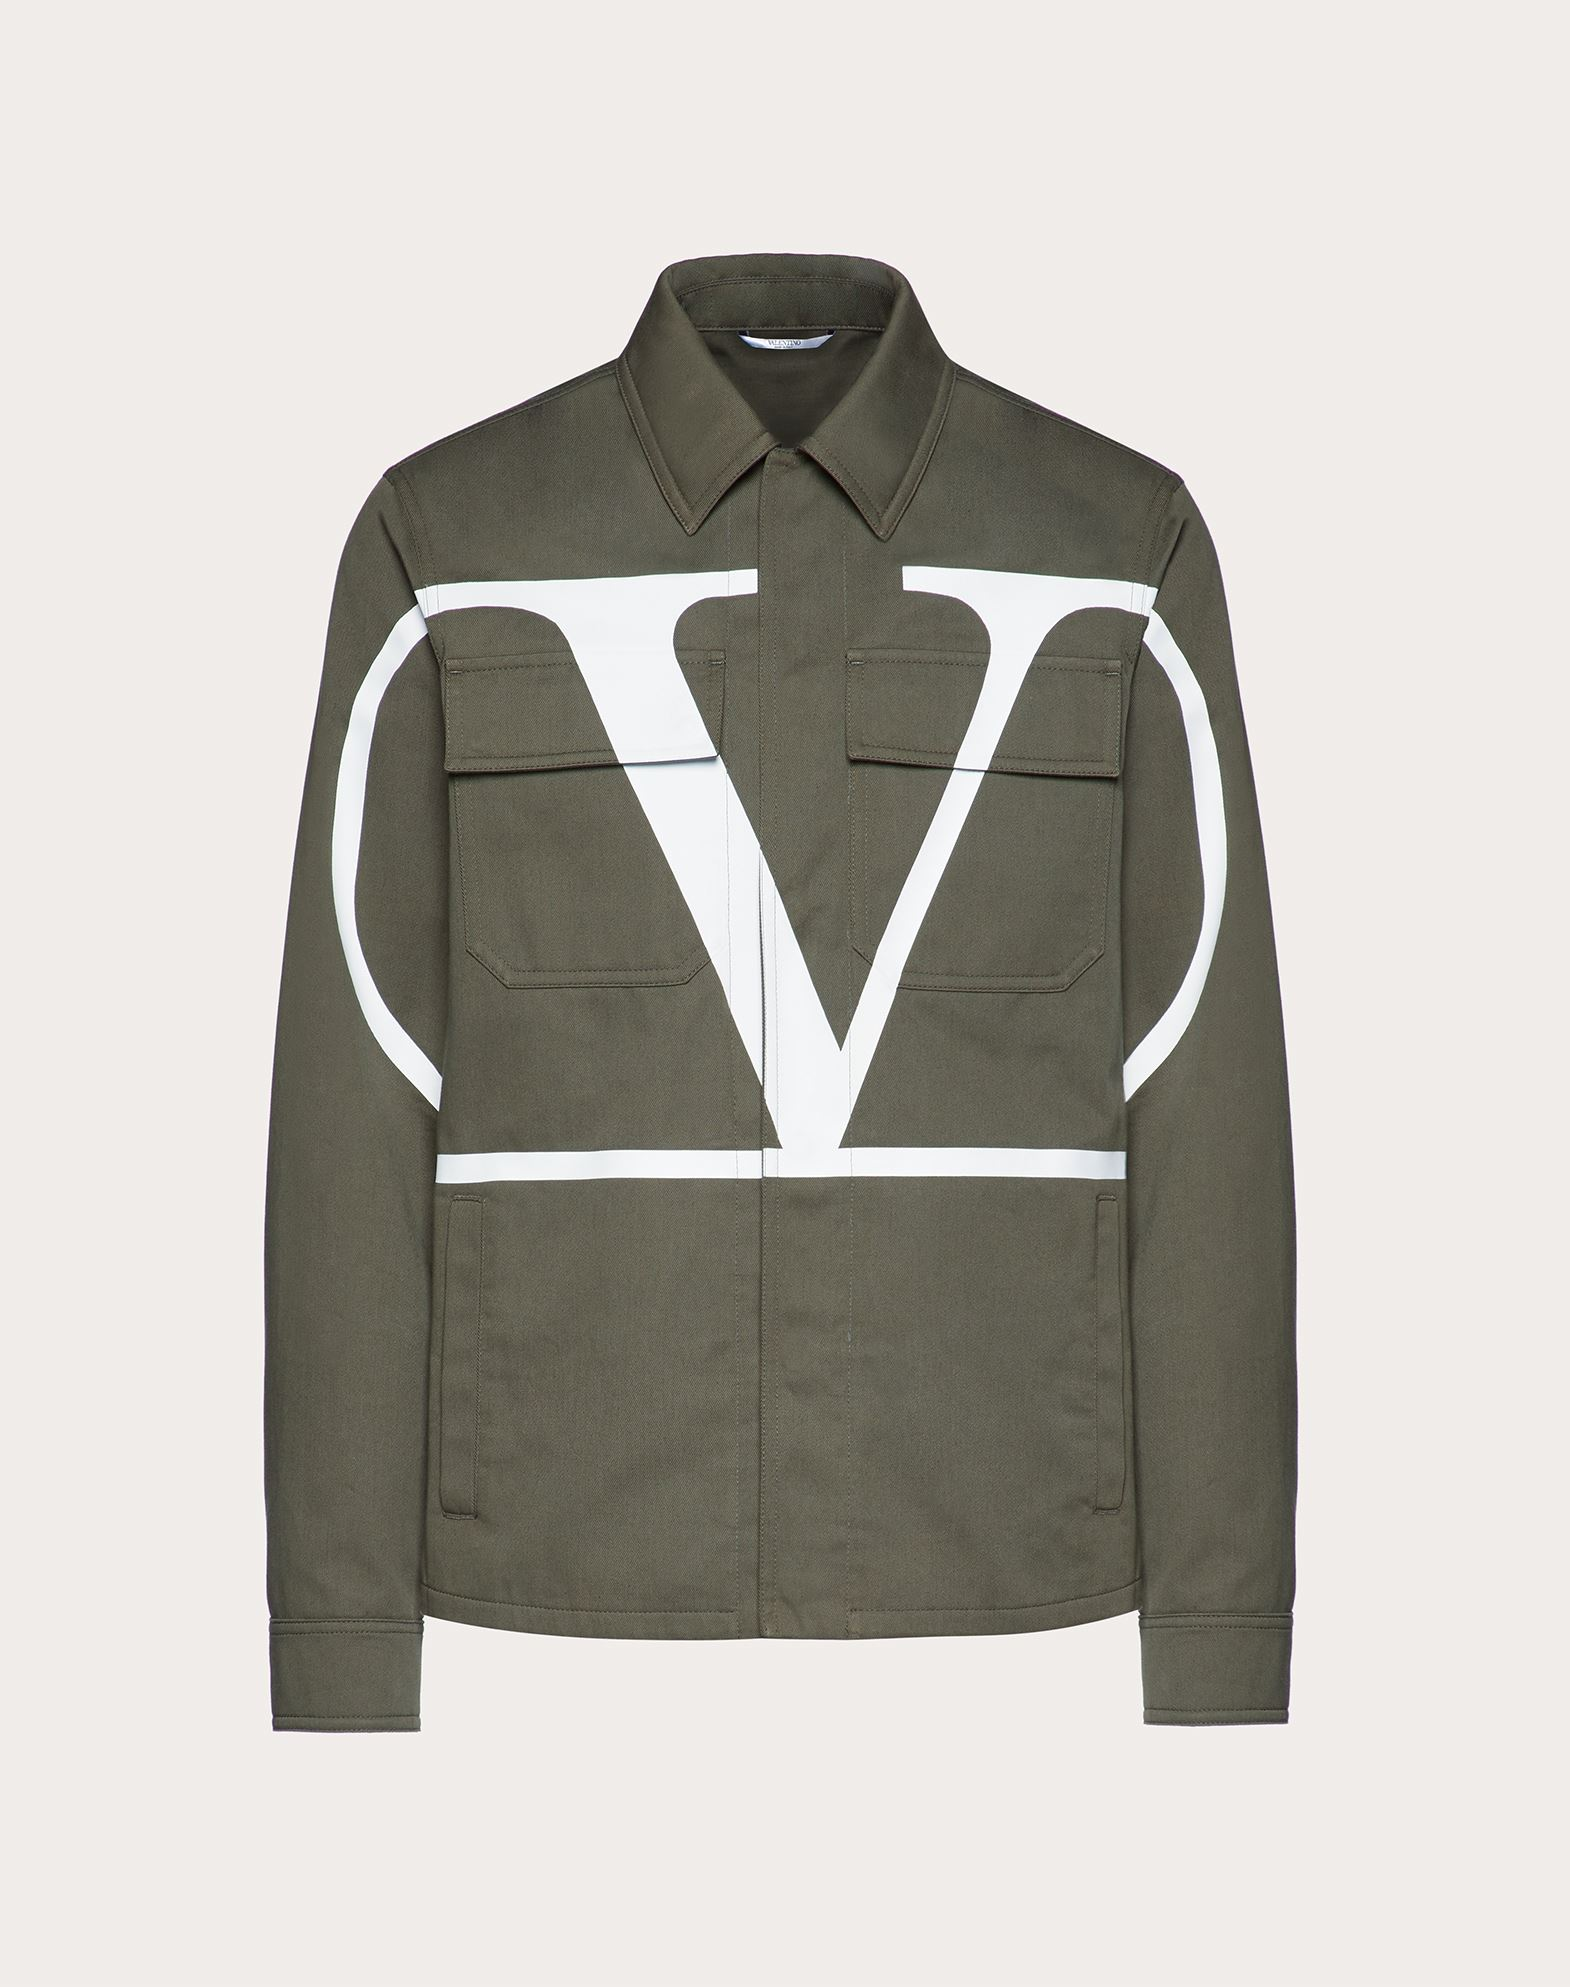 VLOGO SAFARI JACKET